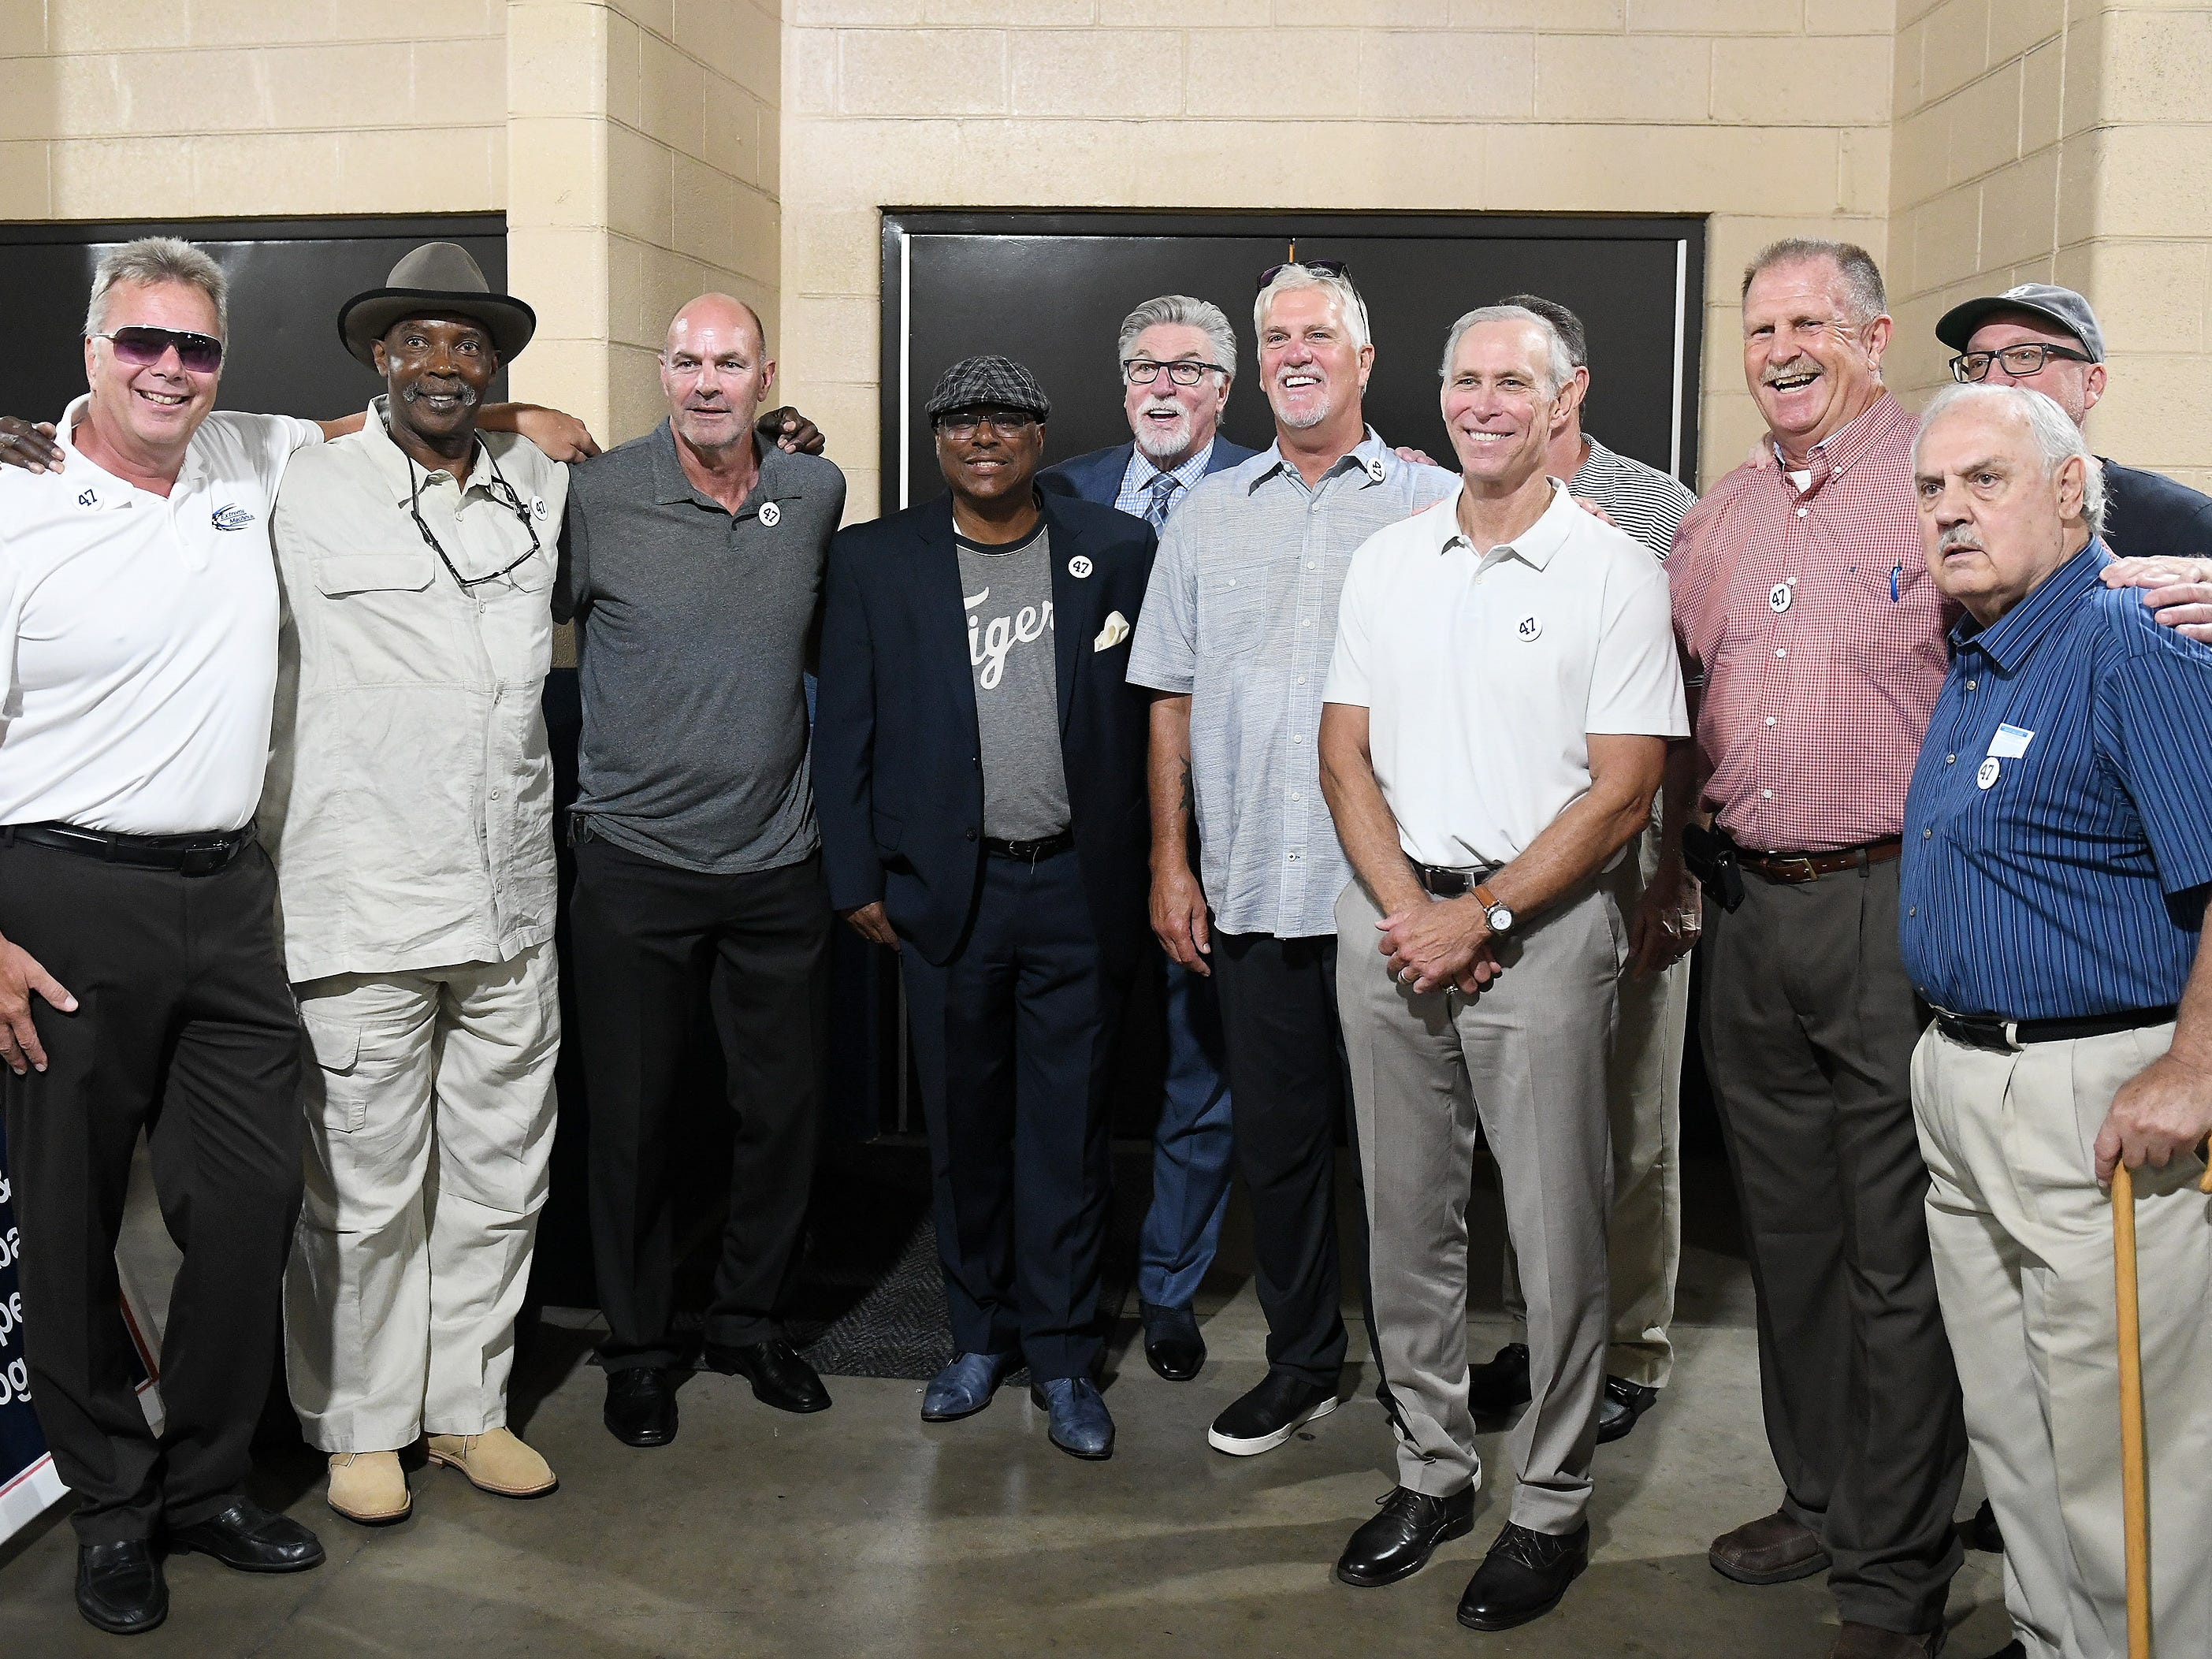 Members of the 1984 Tigers World Champion team gather before the special pregame ceremony to retire the #47 of Tigers pitcher and Hall of Fame pitcher Jack Morris.